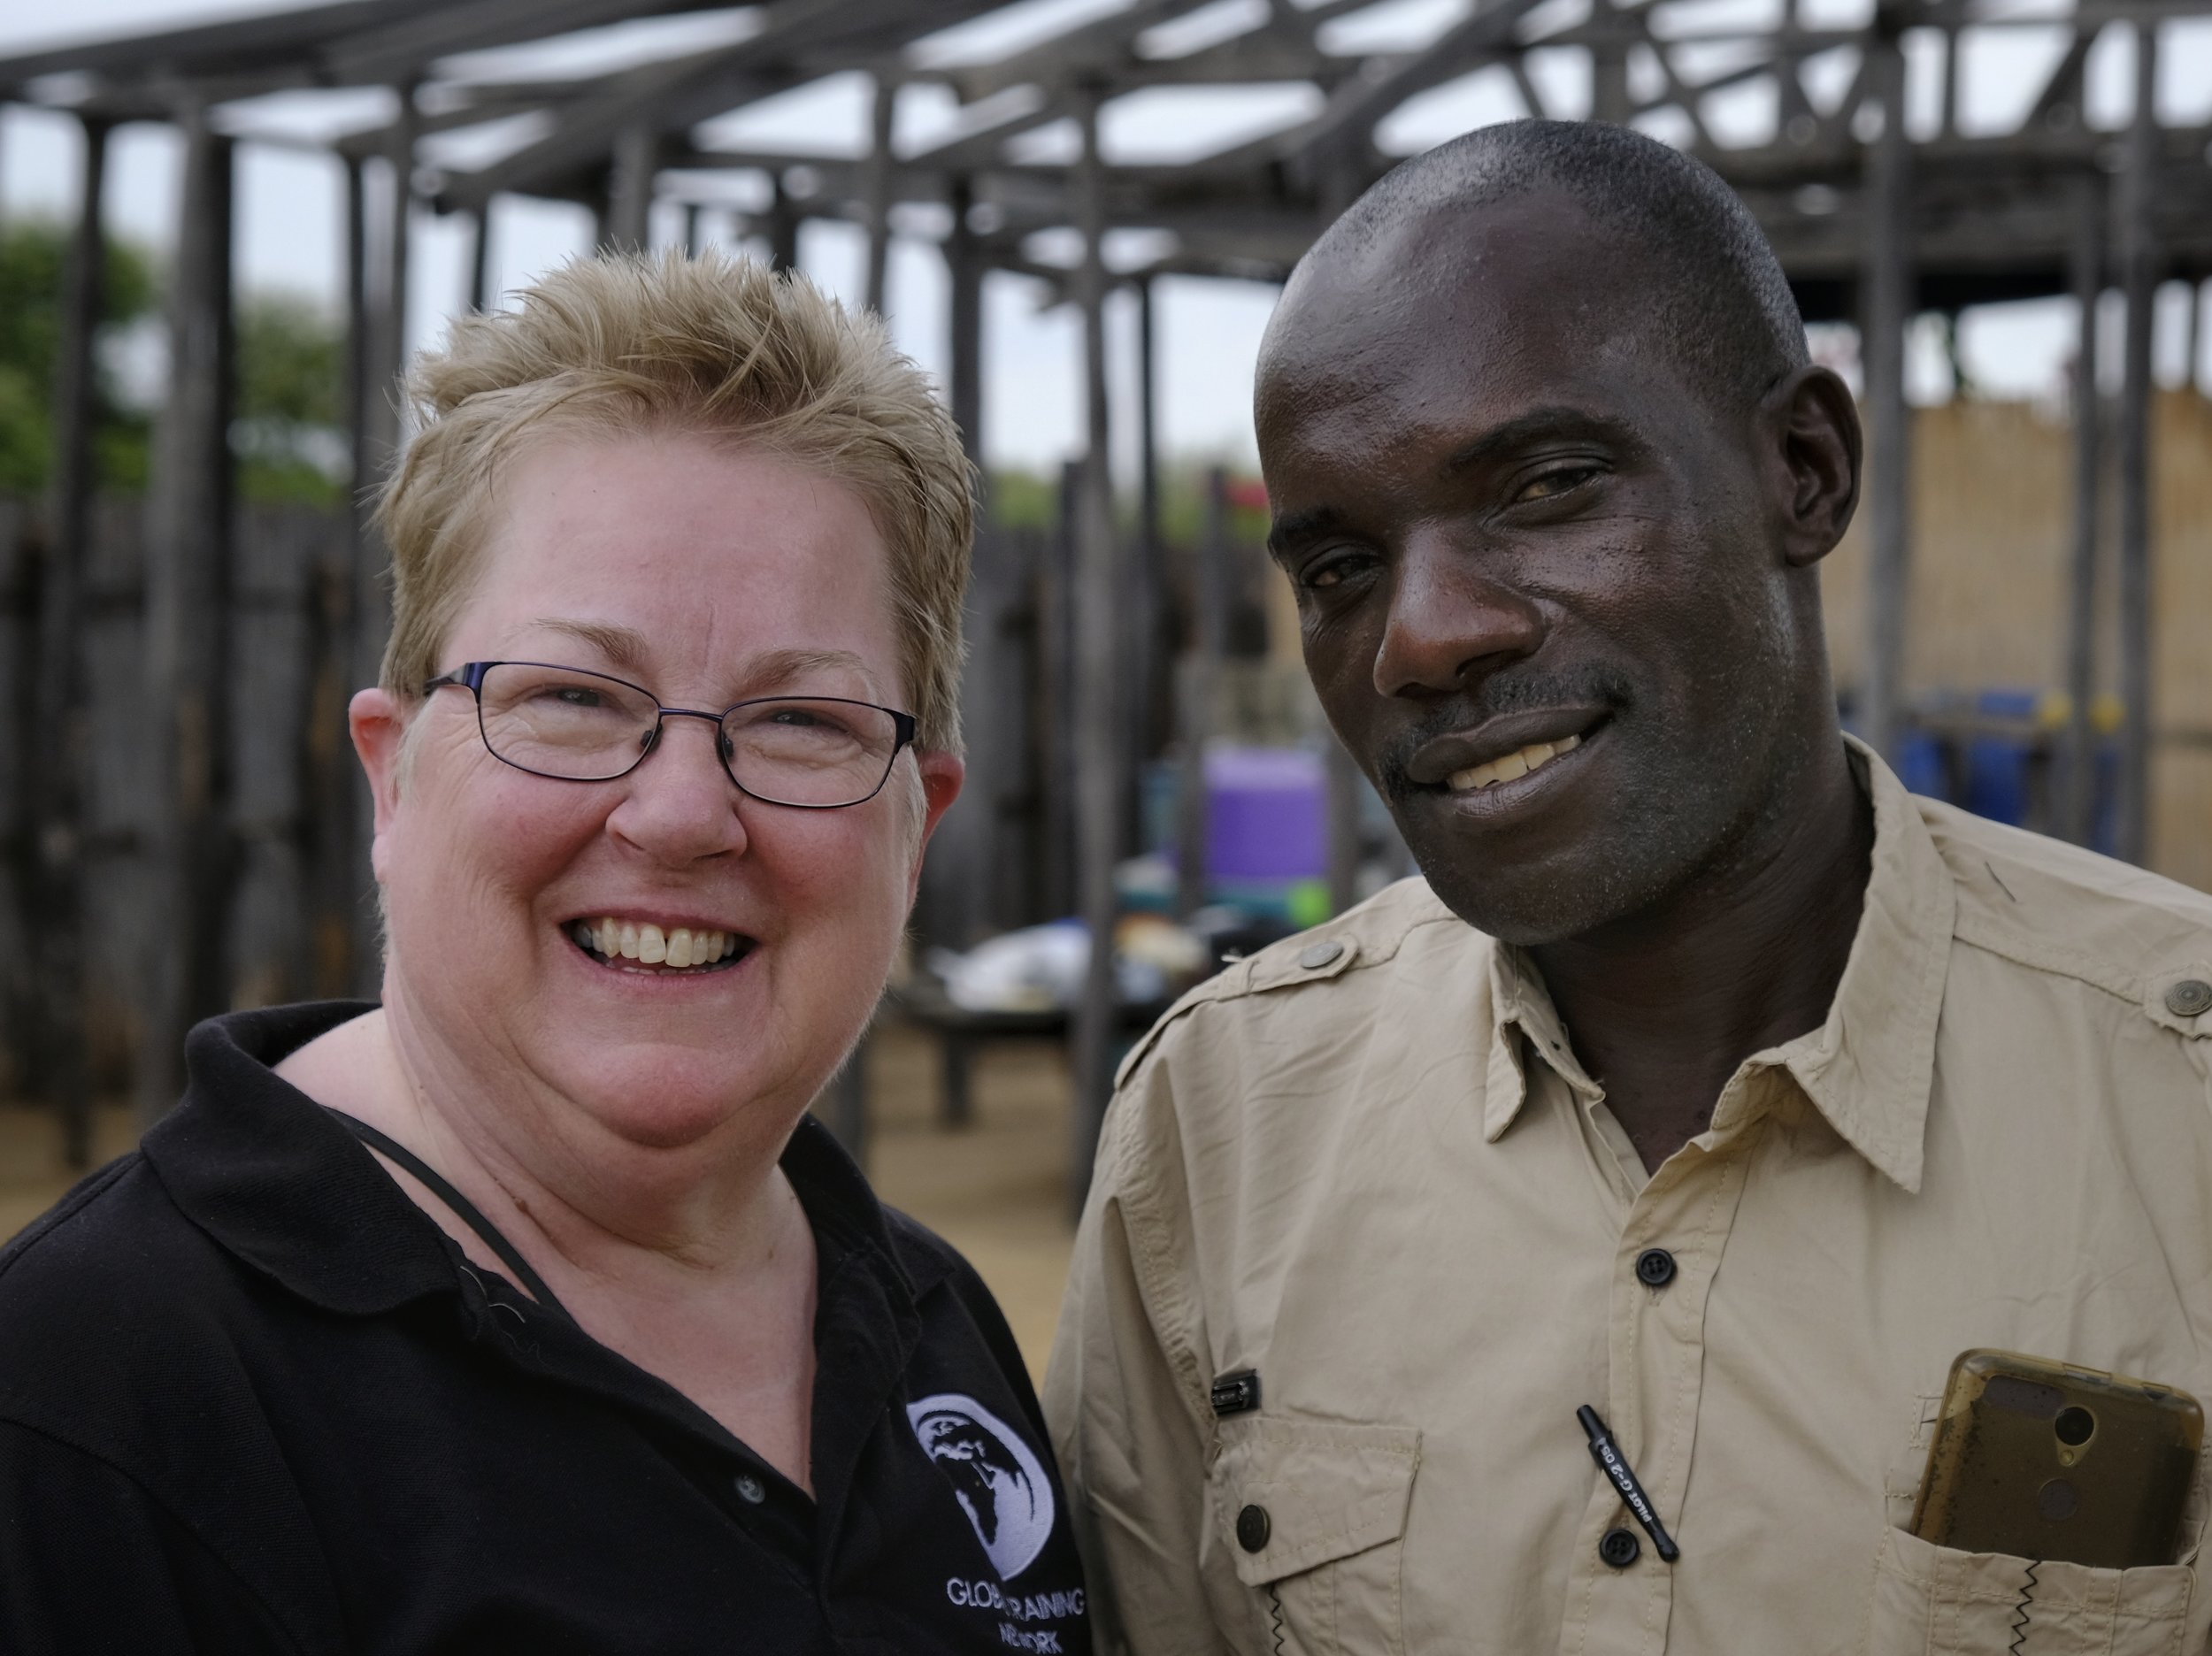 We'll miss our dear friends in Nangweshi, like Pastor Martin Ilukena, pictured here with Abby.